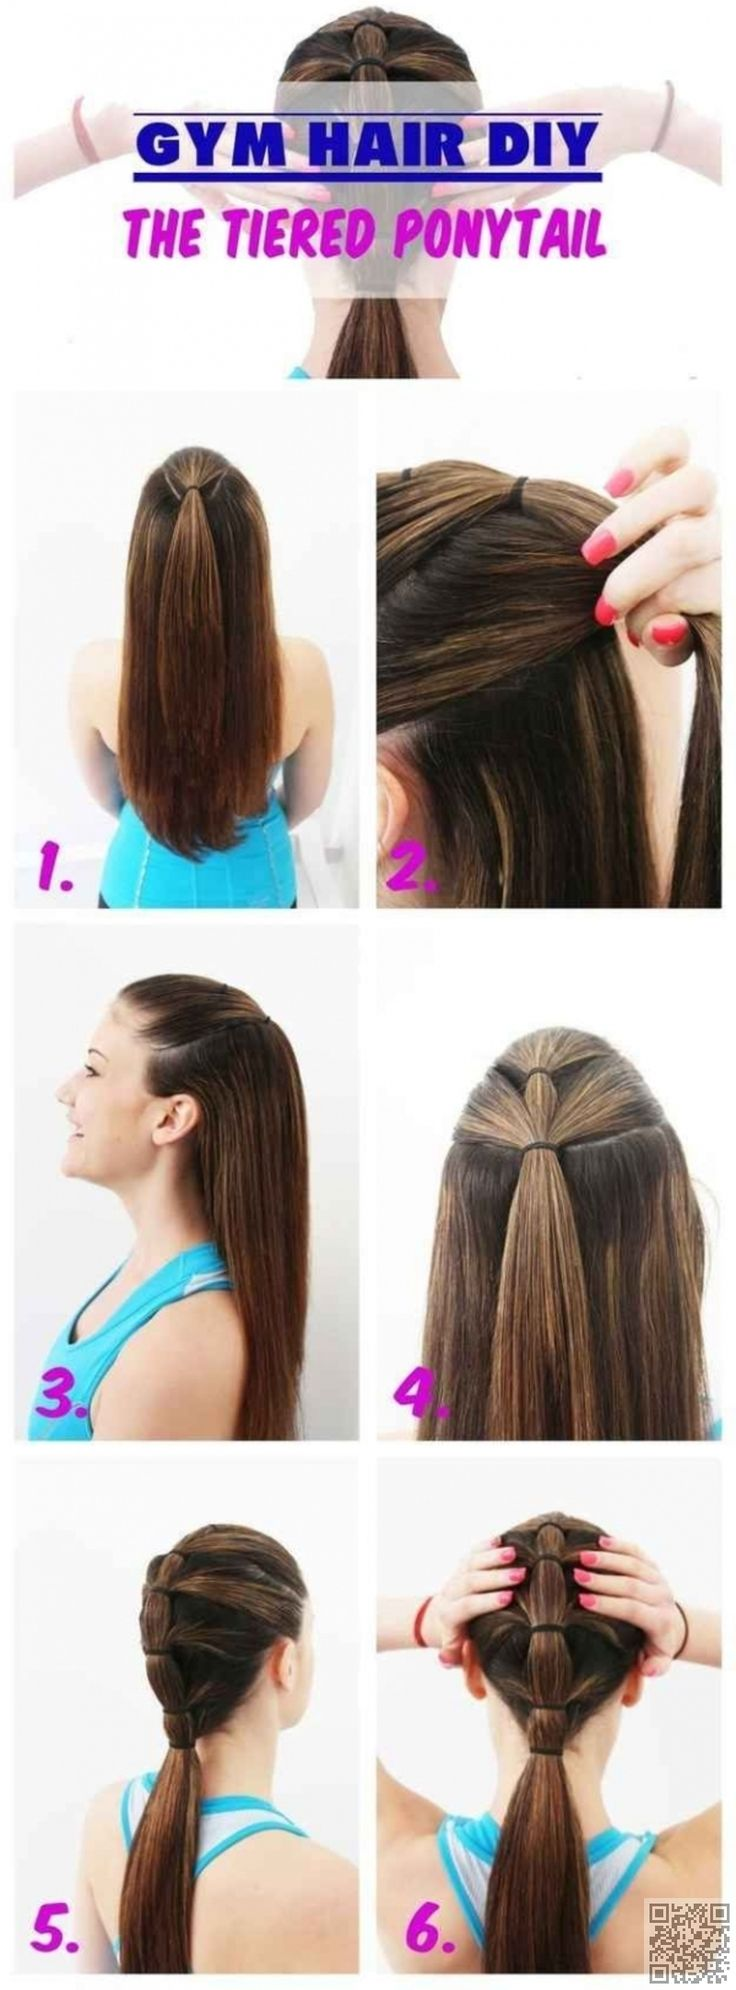 7. #Tiered Ponytail - 29 Ways to #Spice up Your Ponytail ... → Hair #Segmented